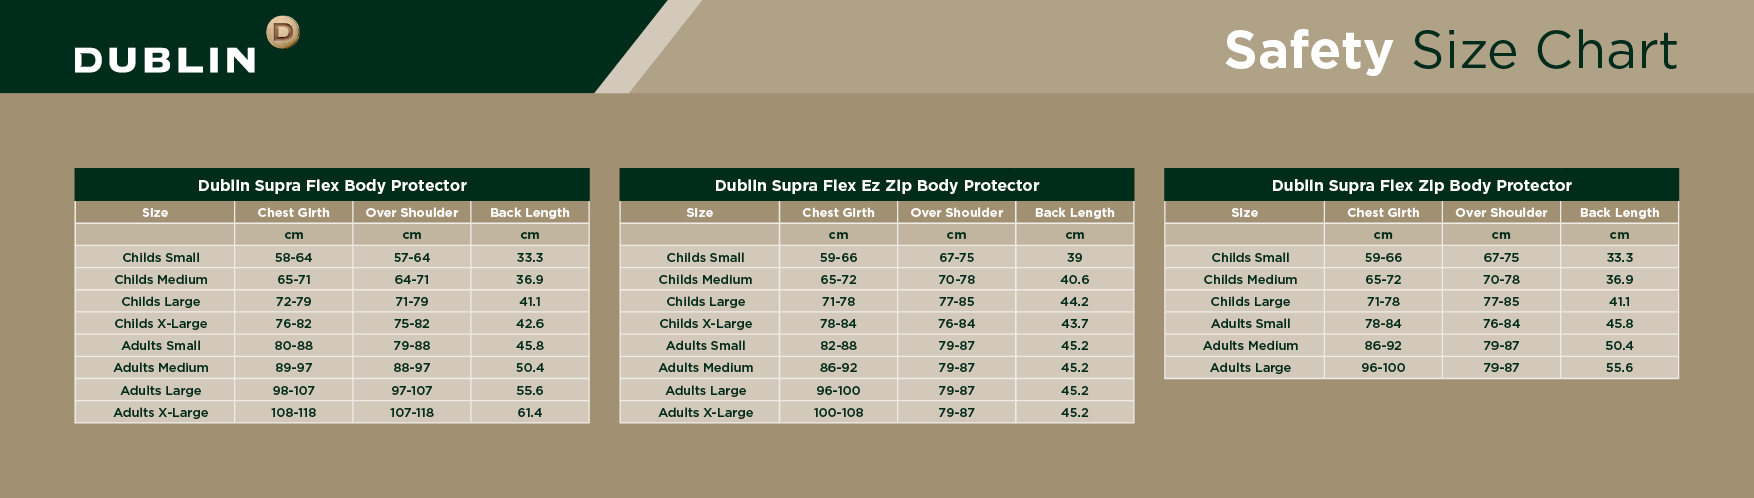 Dublin Safety Size Chart